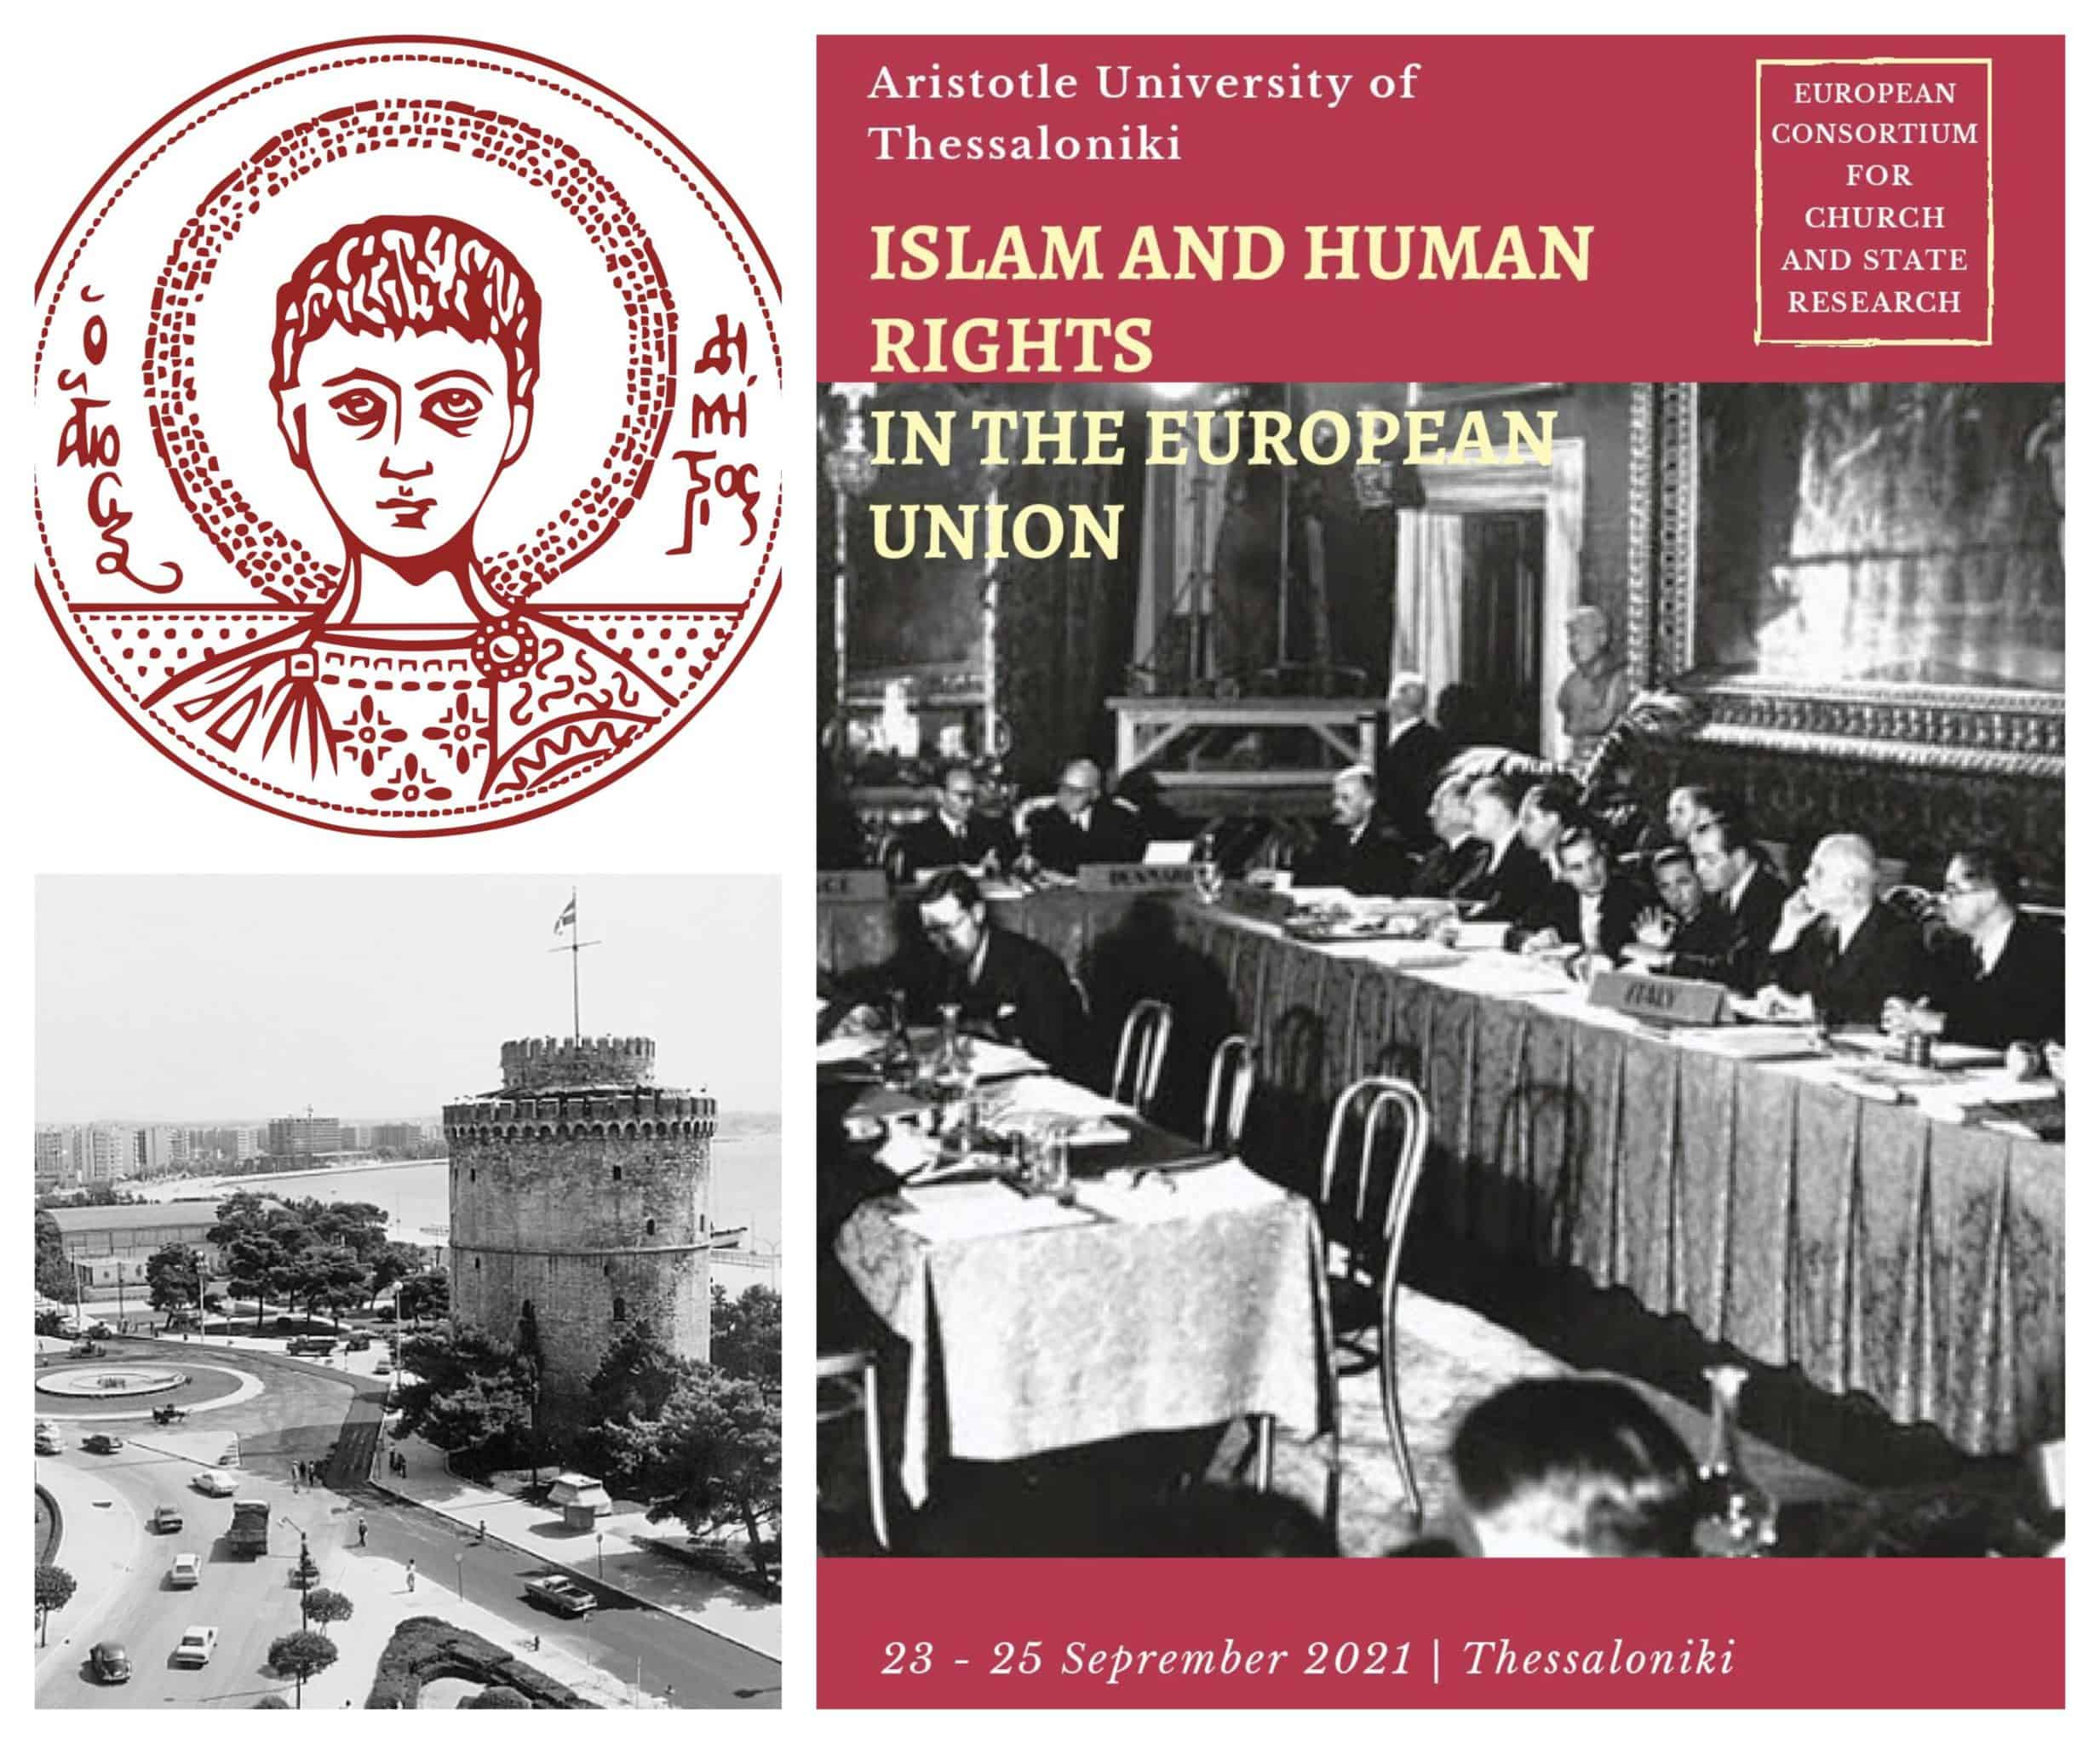 Islam and Human Rights in the EU: A powerful message from Professor John Chrysoulakis 2